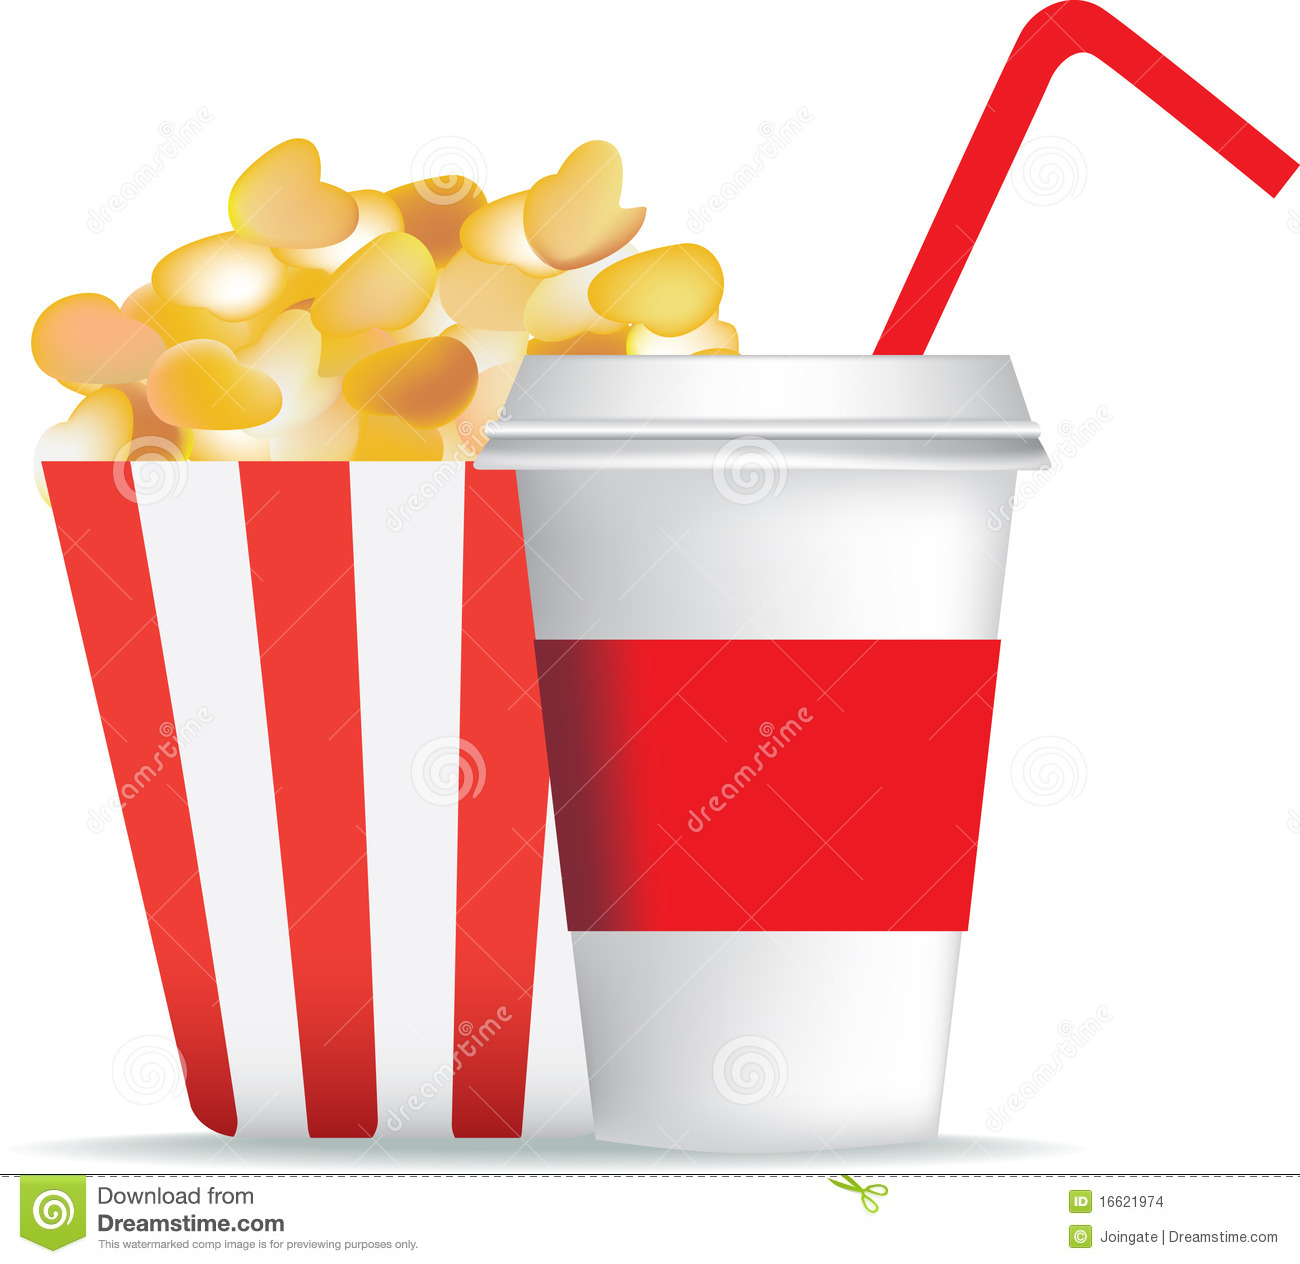 Popcorn And Drink Stock Images - Image: 16621974